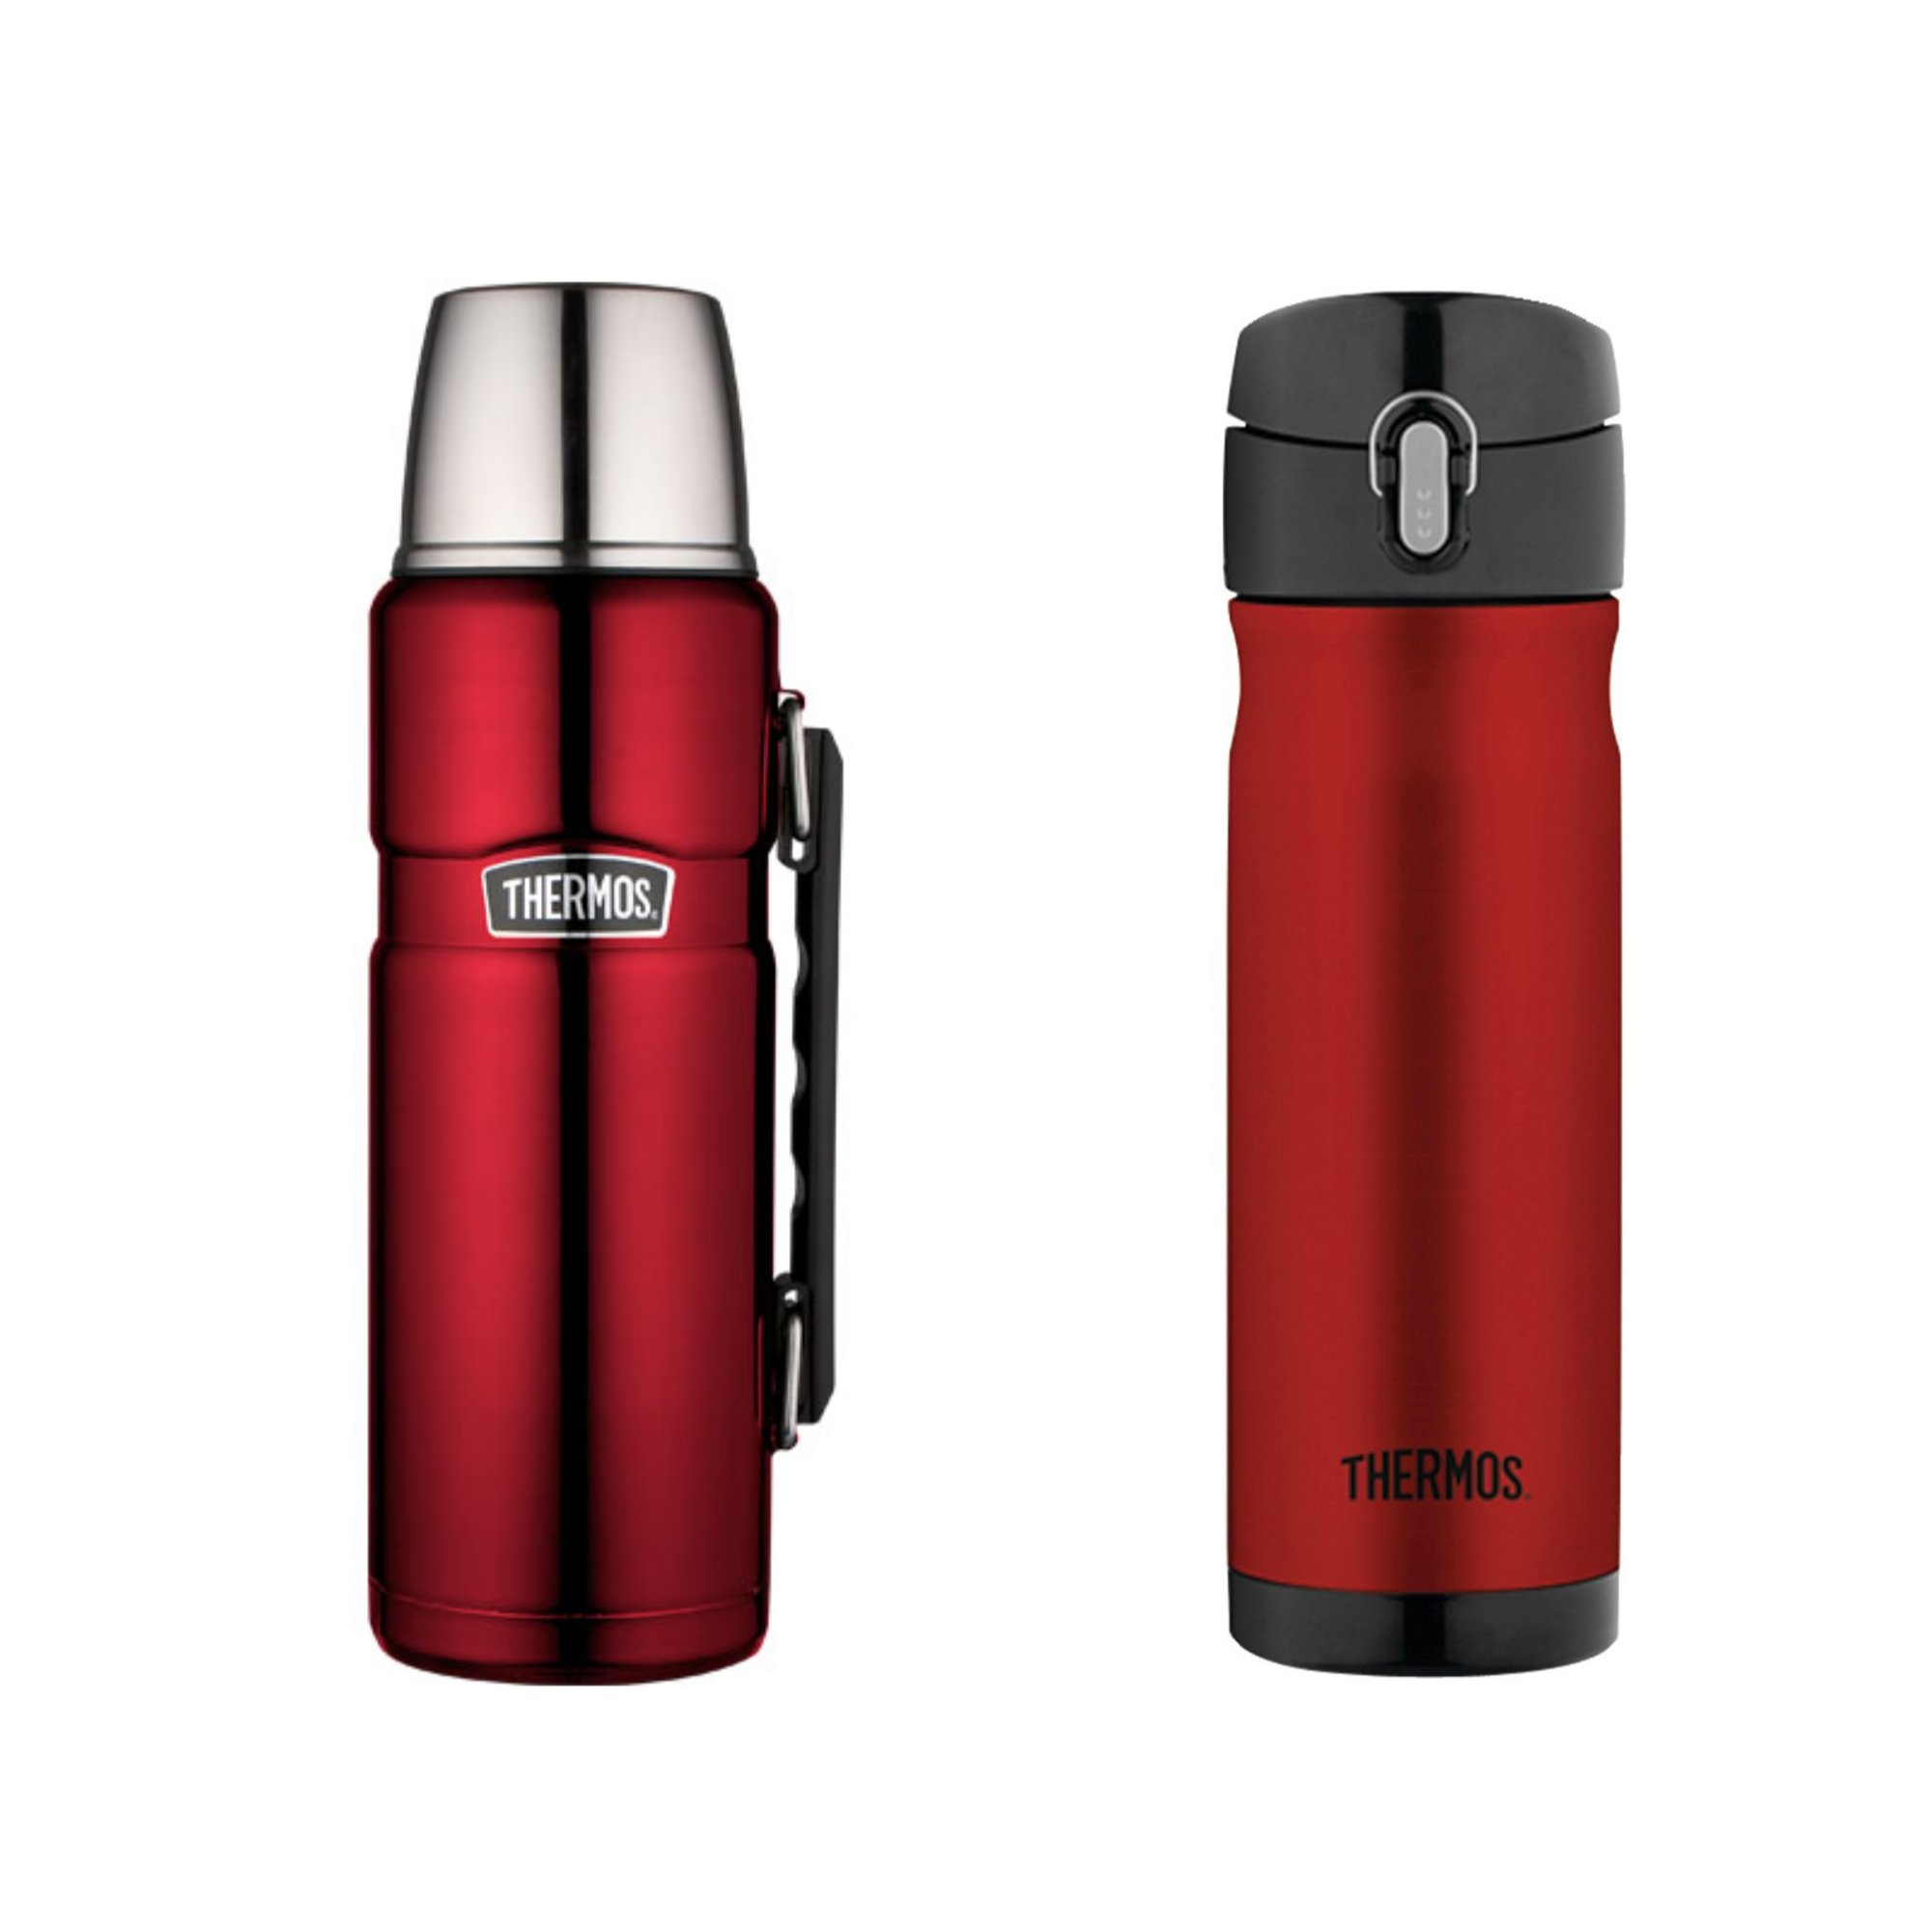 Thermos Stainless Steel Commuter Drink Bottle 16 and 40 Ounce - Cranberry